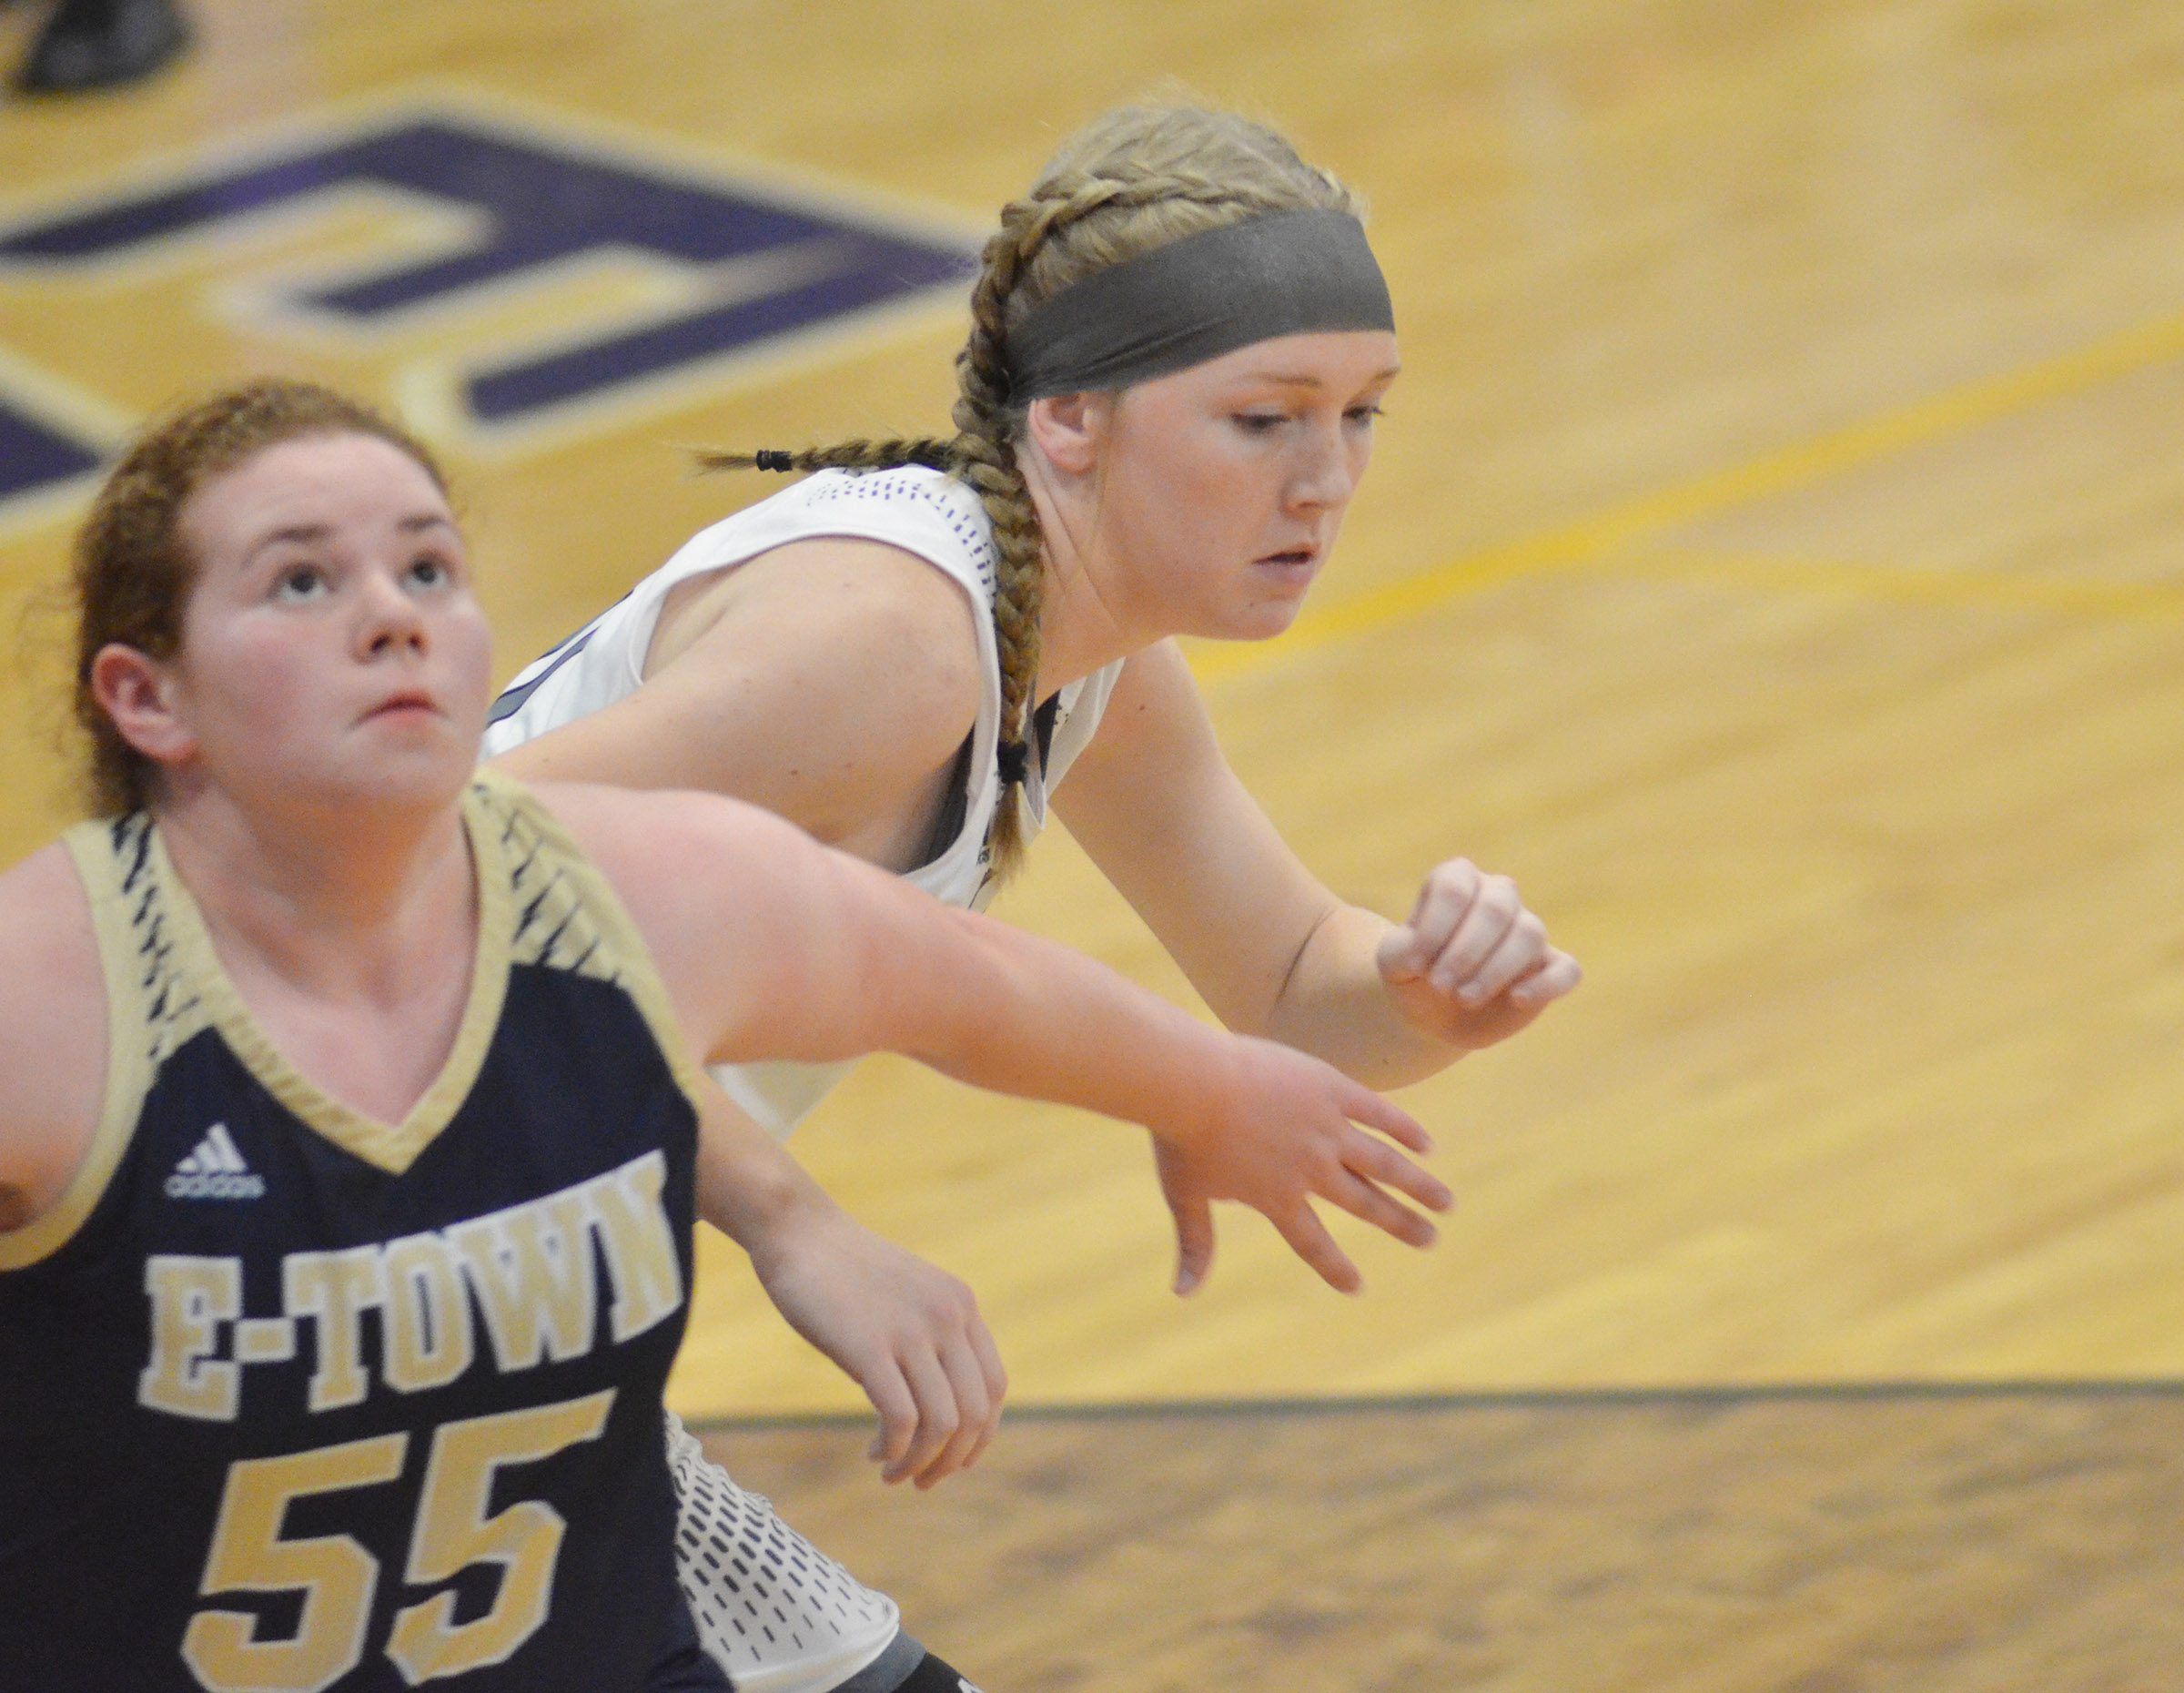 CHS freshman Catlyn Clausen fights for a rebound.